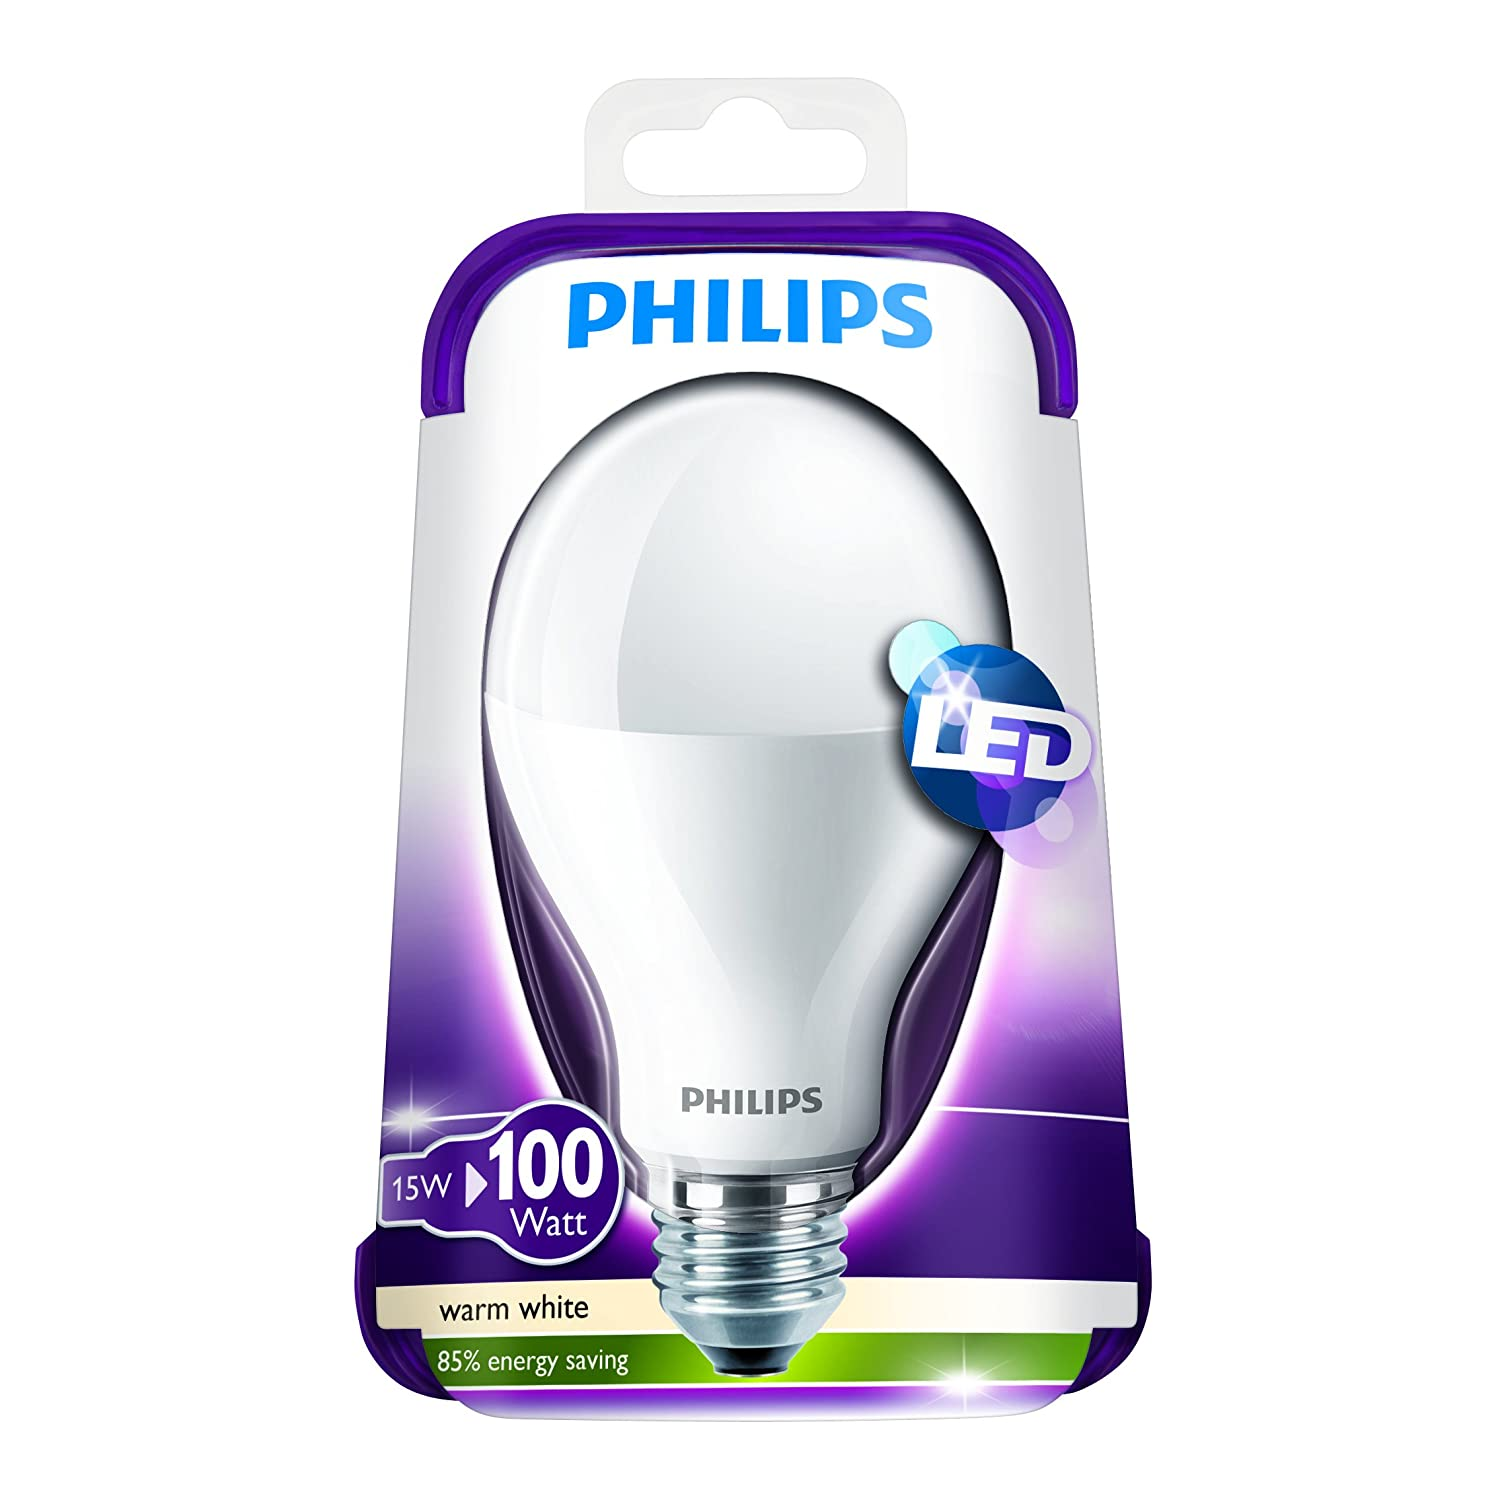 Philips Lampadina LED, Attacco E27, 15W equivalente a 100W, 230V